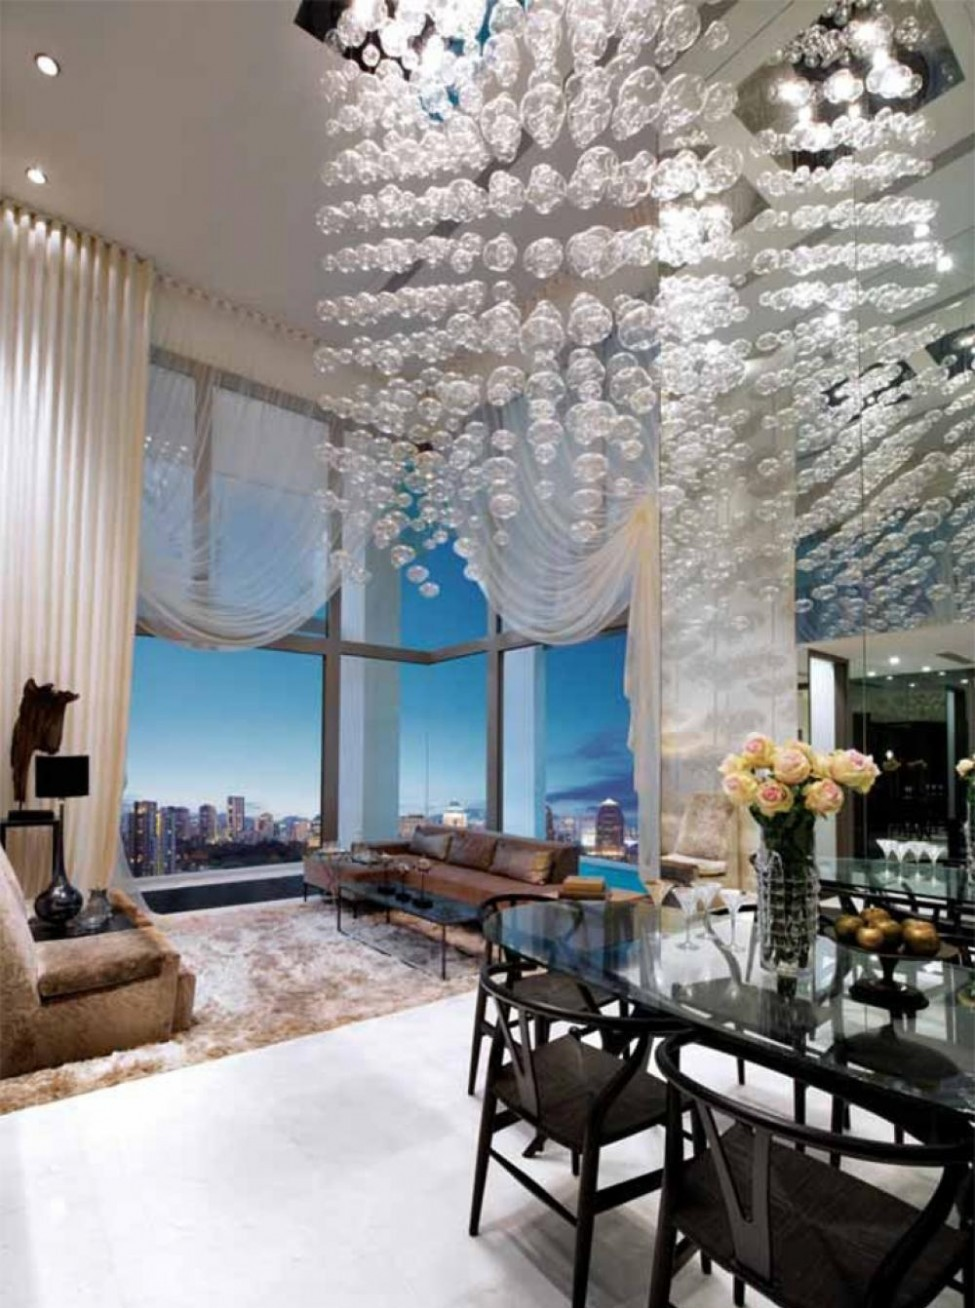 high-ceiling-decorating-living-room-with-Modern-chandeliers